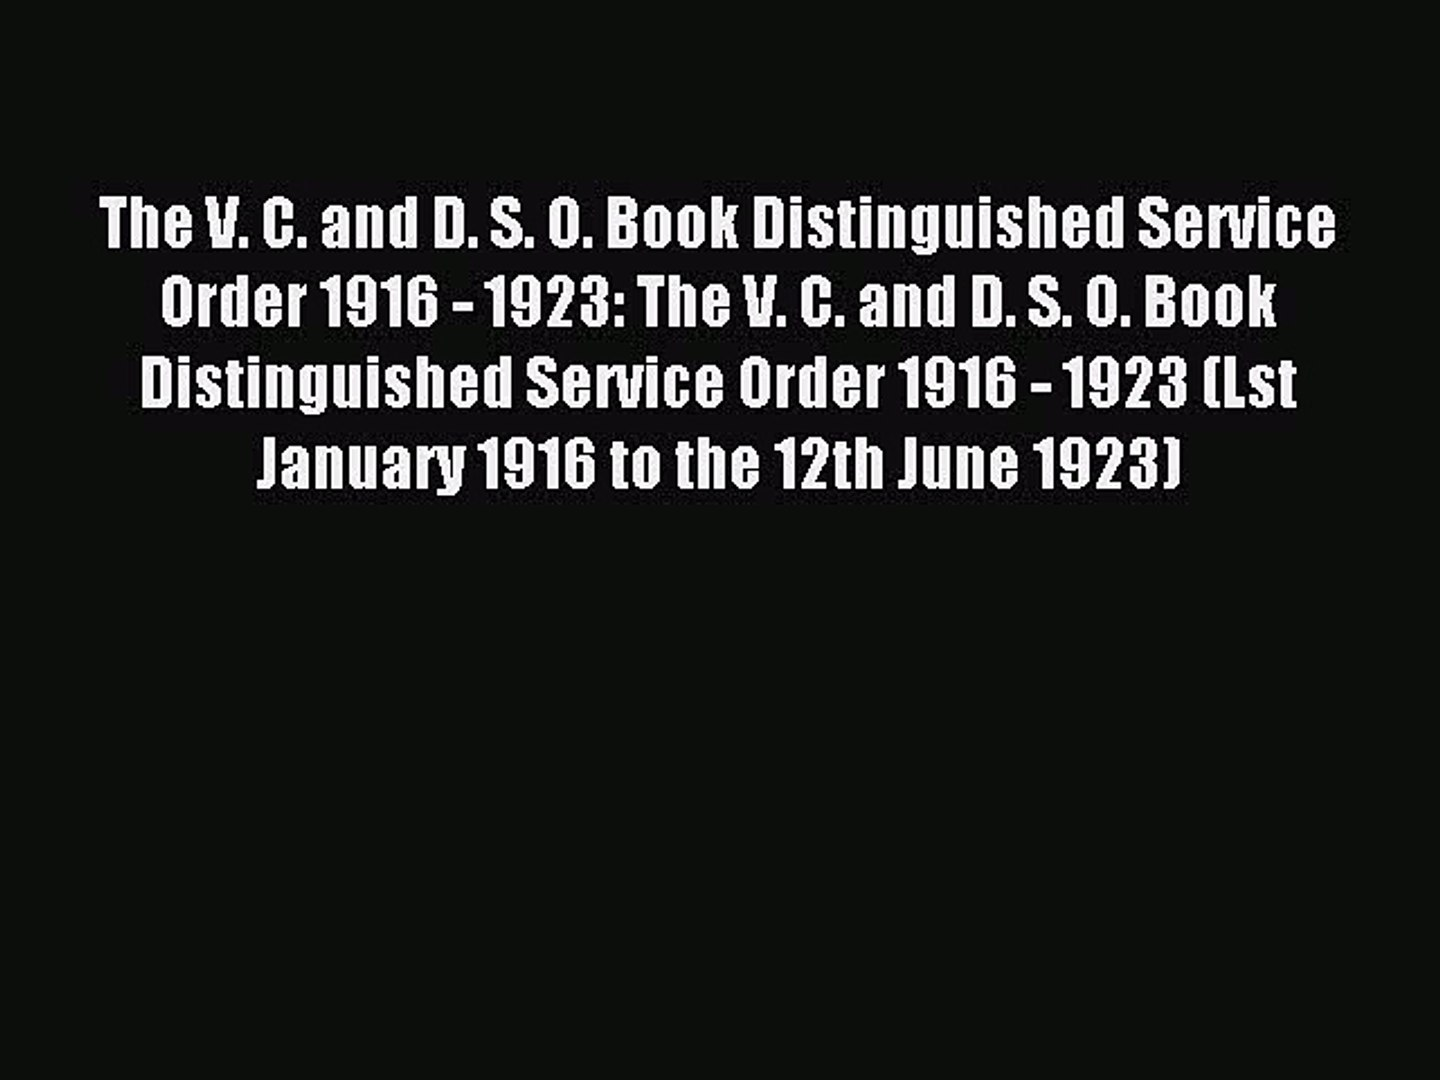 Read The V. C. and D. S. O. Book Distinguished Service Order 1916 - 1923: The V. C. and D.